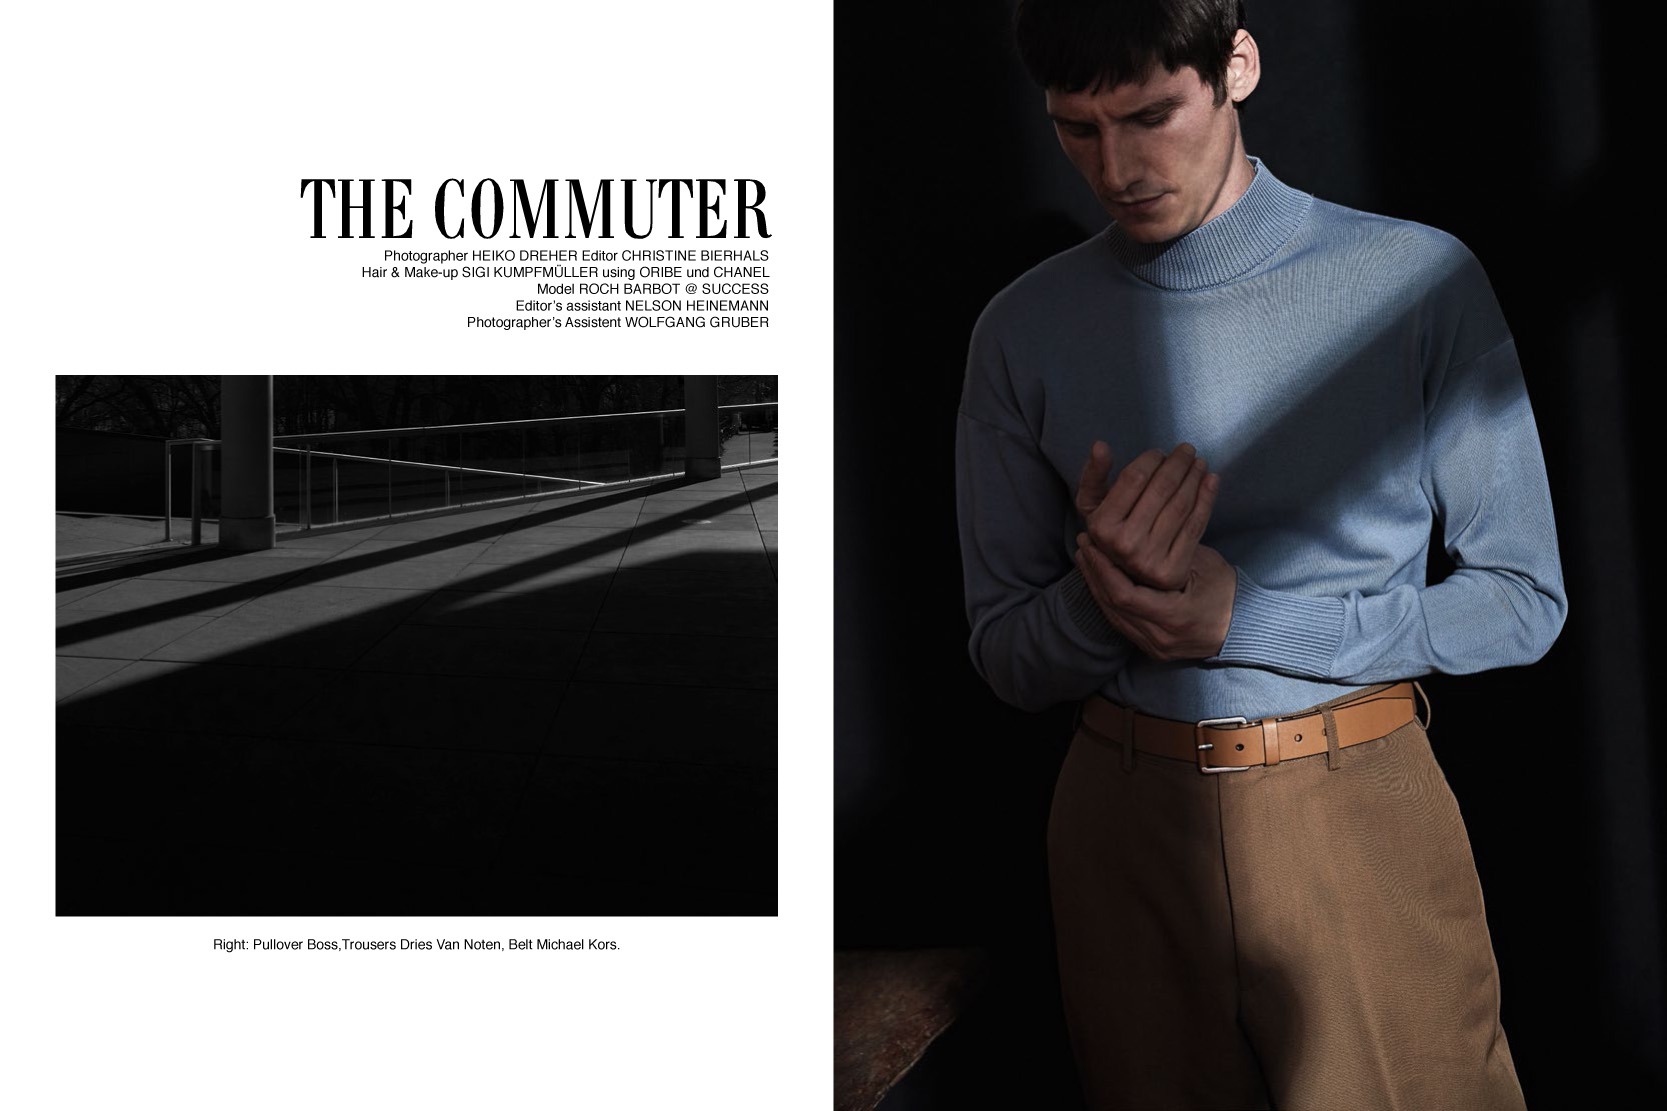 THE COMMUTER. SUPPLEMENT NZZ. CREATIVE DIRECTION.